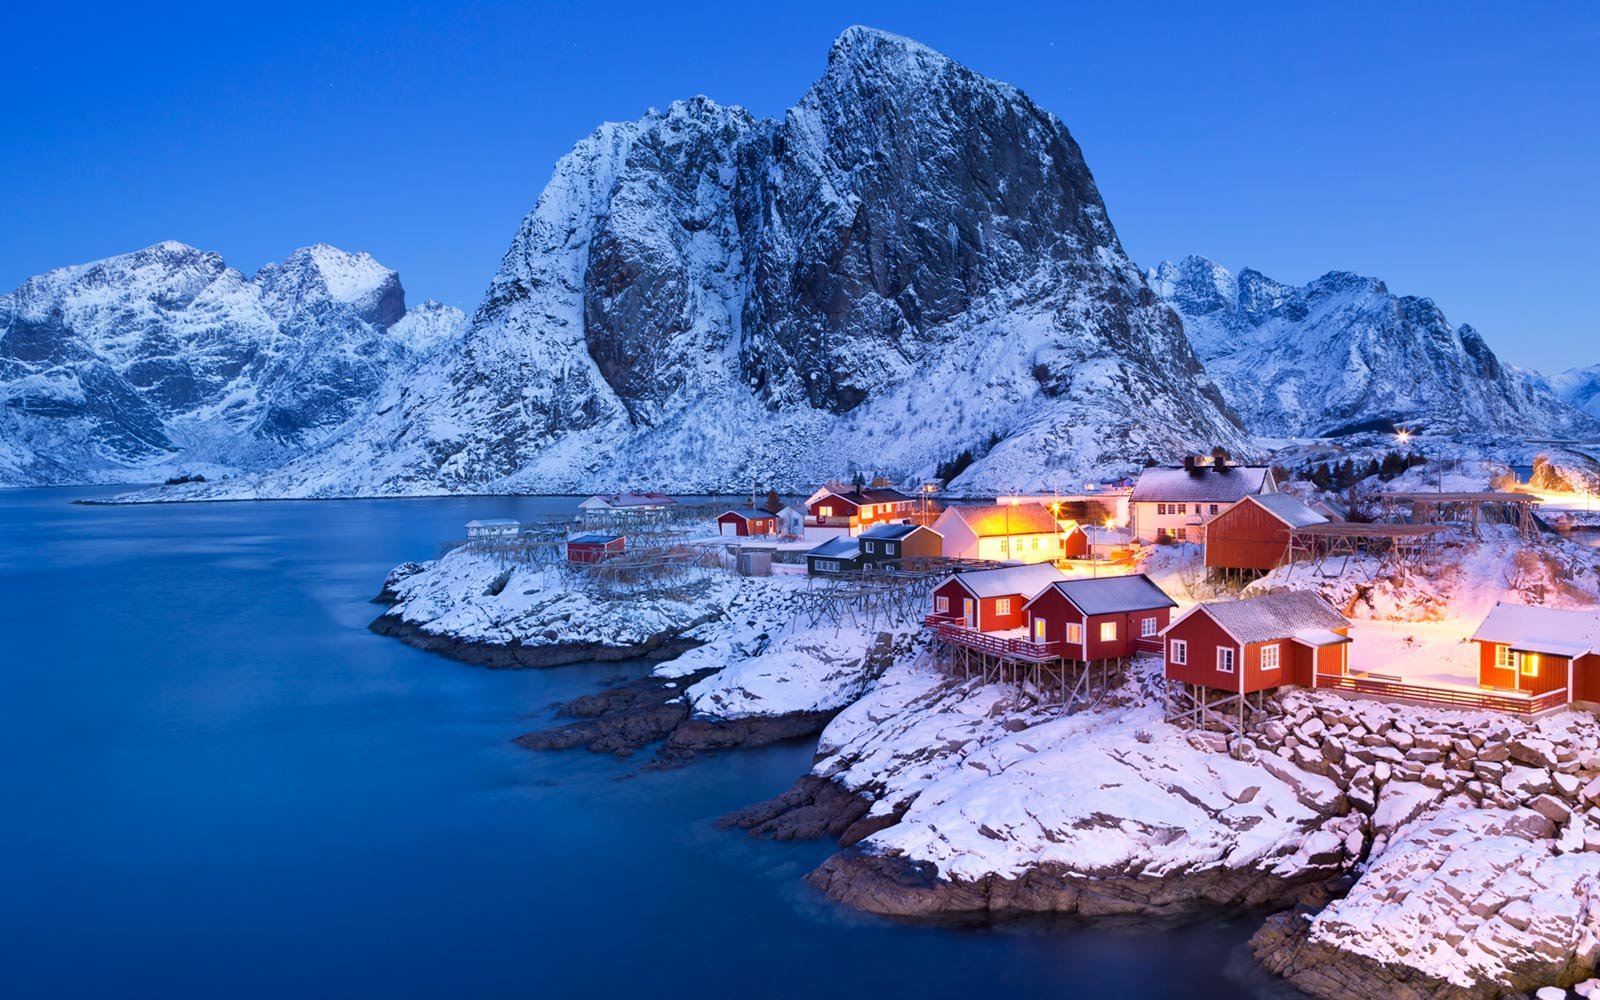 Fisherman's Cabins, Hamnøy, Lofoten Islands, Norway